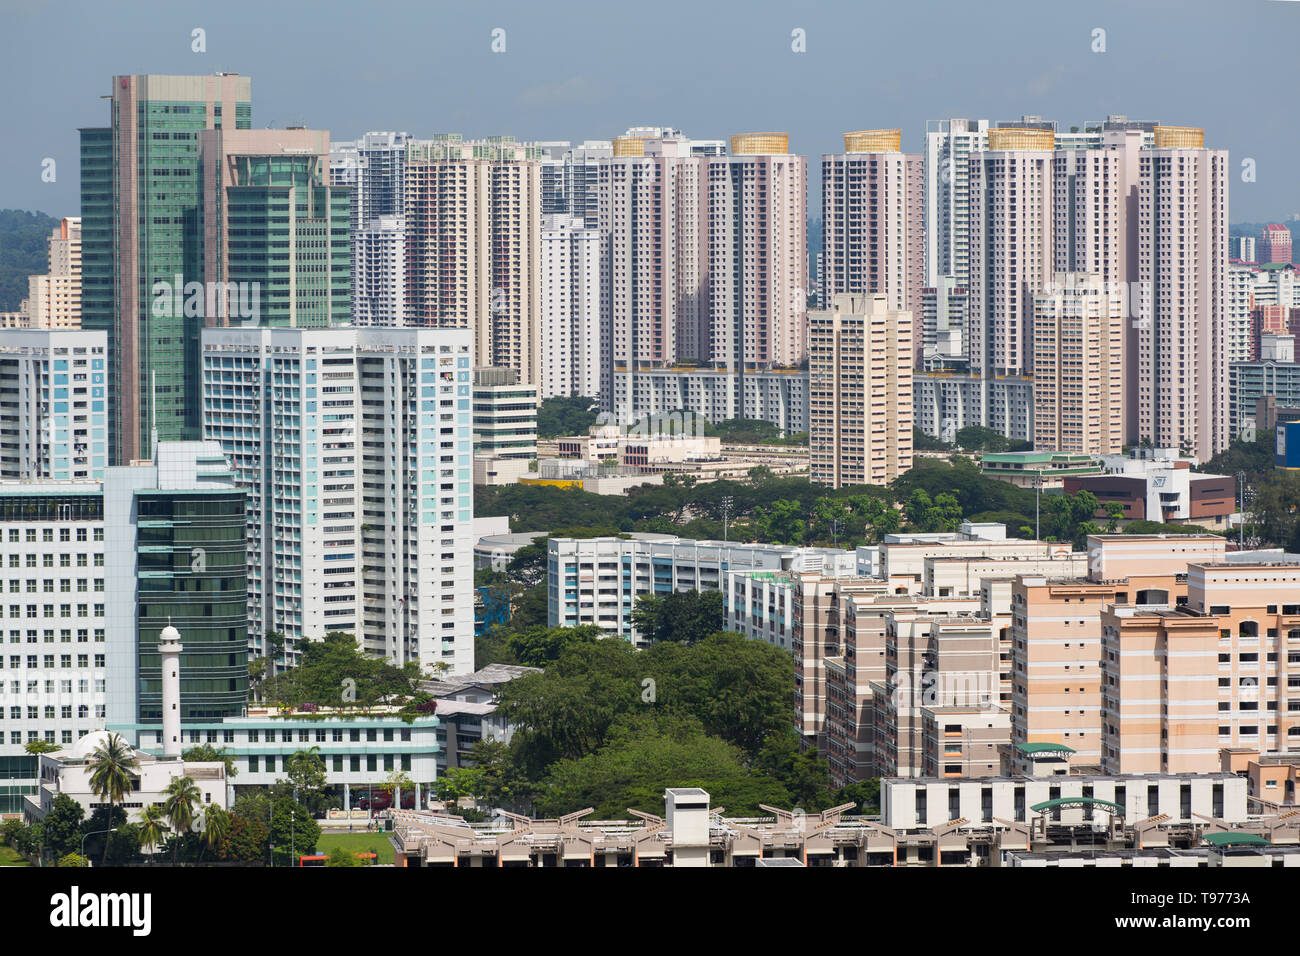 Urban view of high-rise housing estates at Toa Payoh district in Singapore. - Stock Image